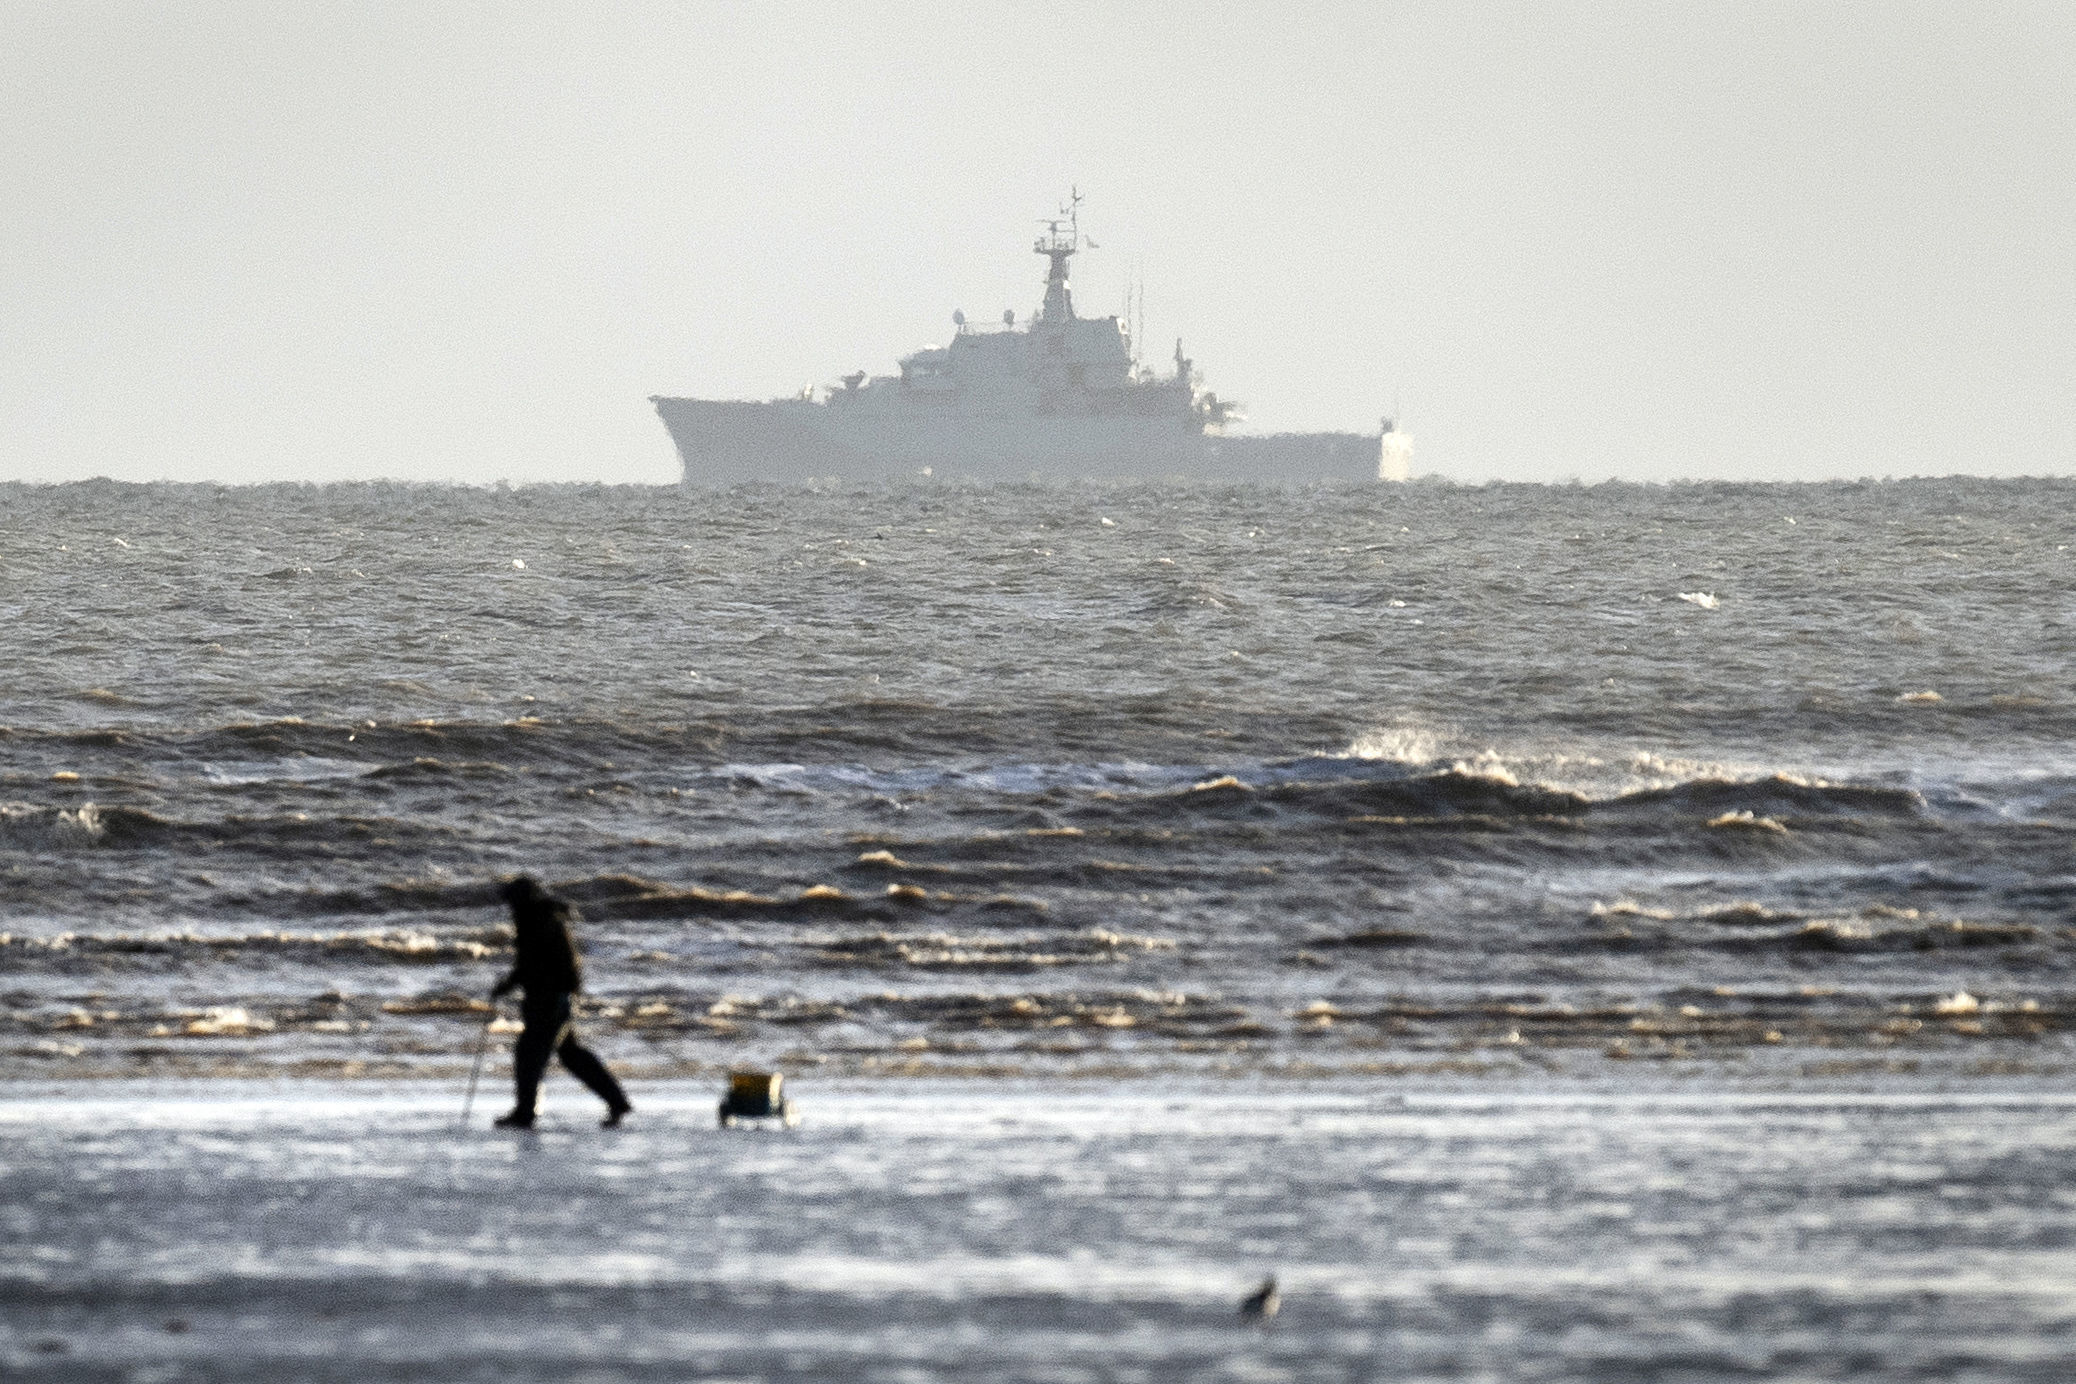 HMS Mersey passes Greatstone beach as it patrols along the Kent coastline. PRESS ASSOCIATION Photo. Picture date: Wednesday January 9, 2019. The government has stepped up patrols in the English Channel after an increase in the number of migrants seeking t